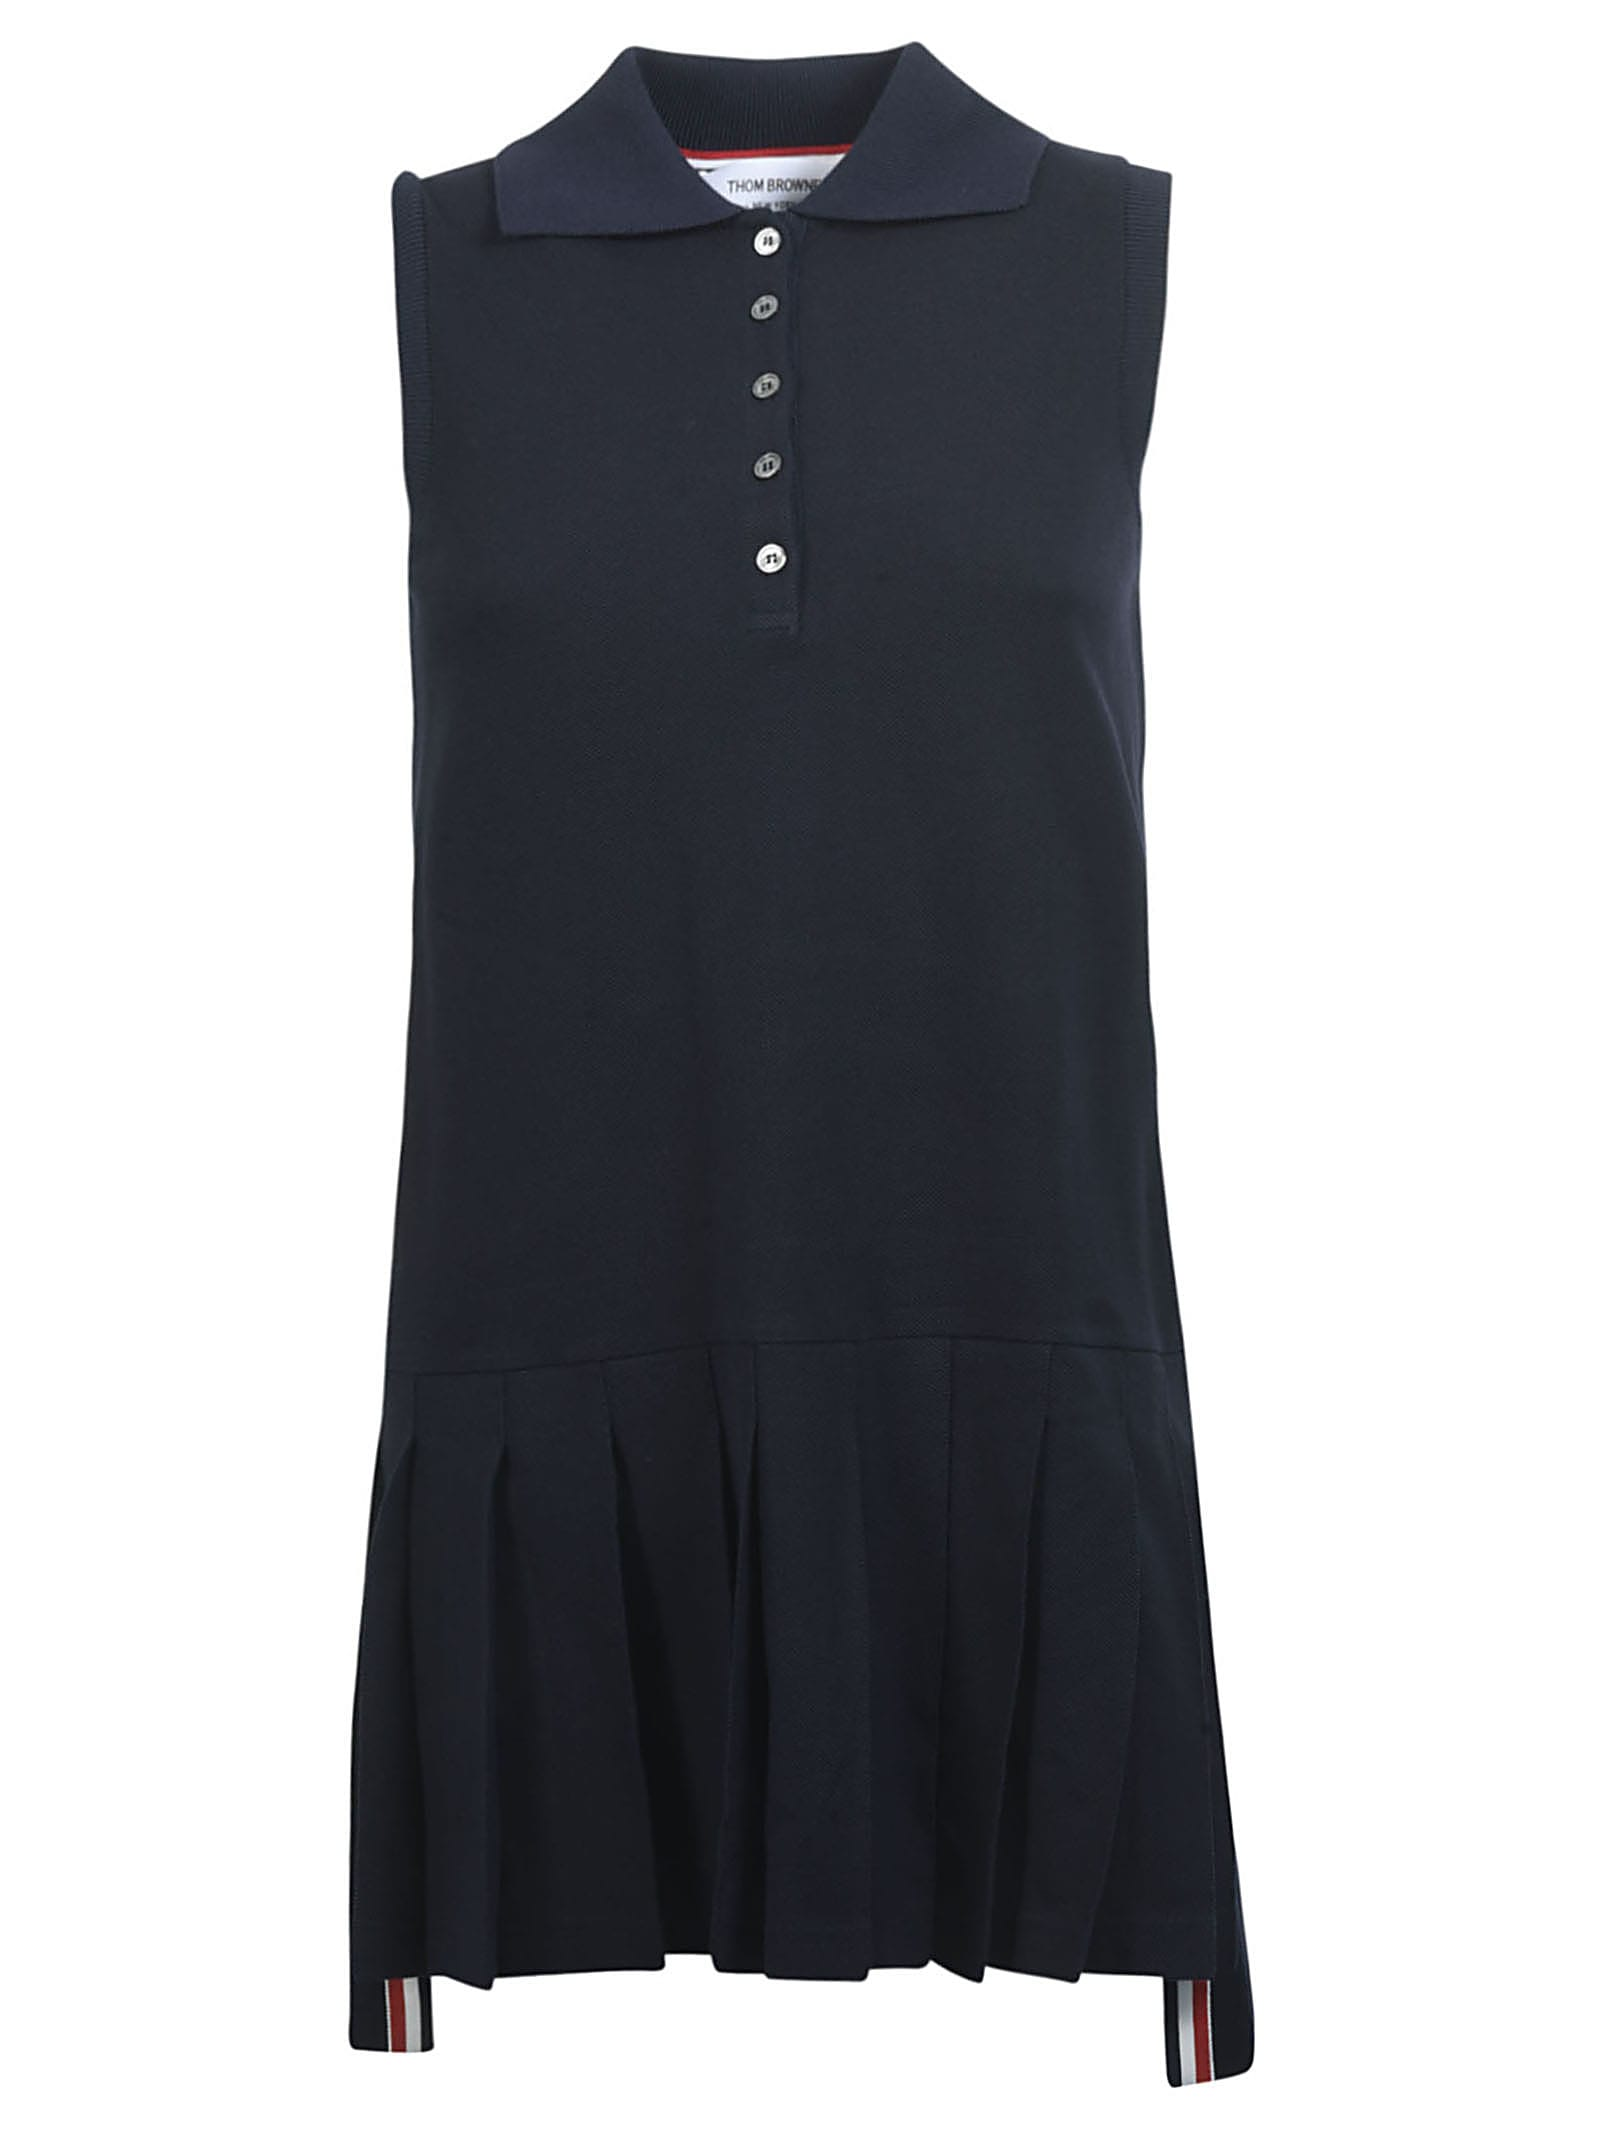 Buy Thom Browne Sleeveless Pleated Bottom Tennis Dress online, shop Thom Browne with free shipping